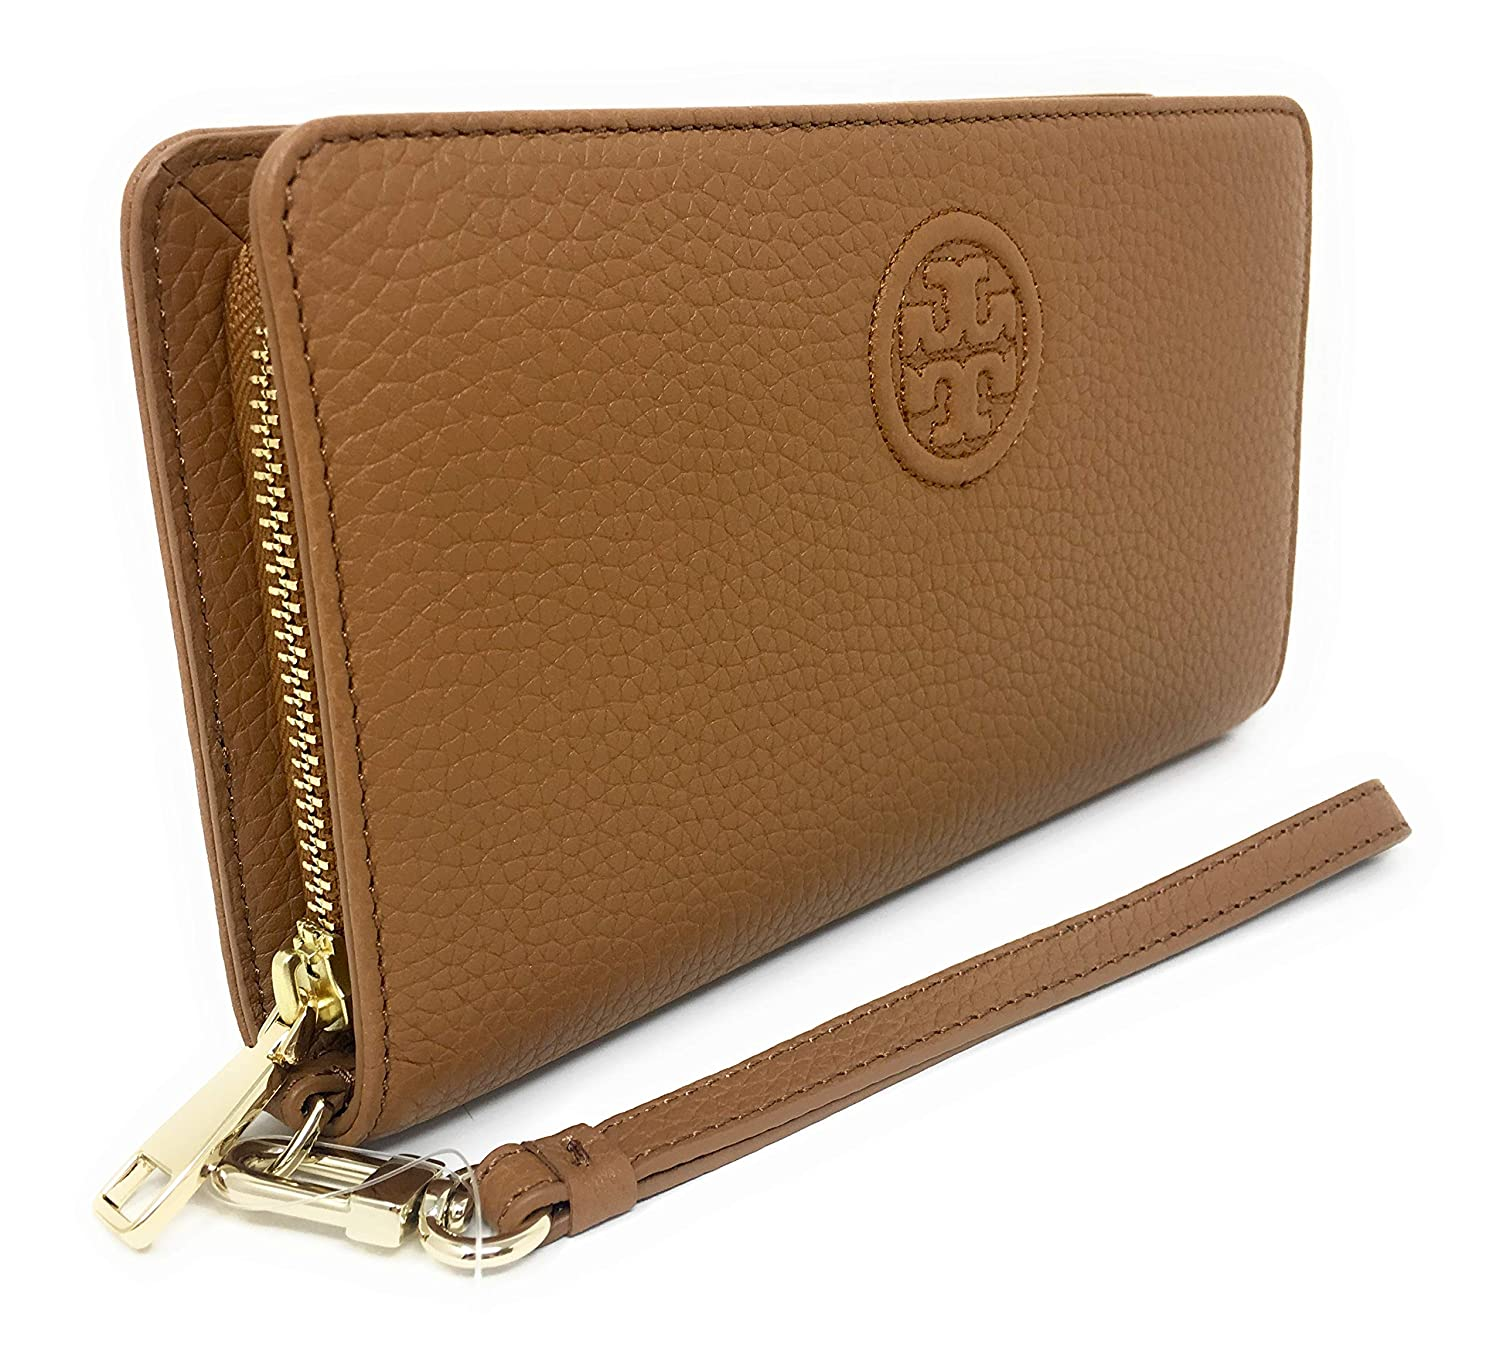 3fc49b172660 Amazon.com  Tory Burch Women s Bombe Smartphone Leather Wristlet (Bark Brown)   Clothing